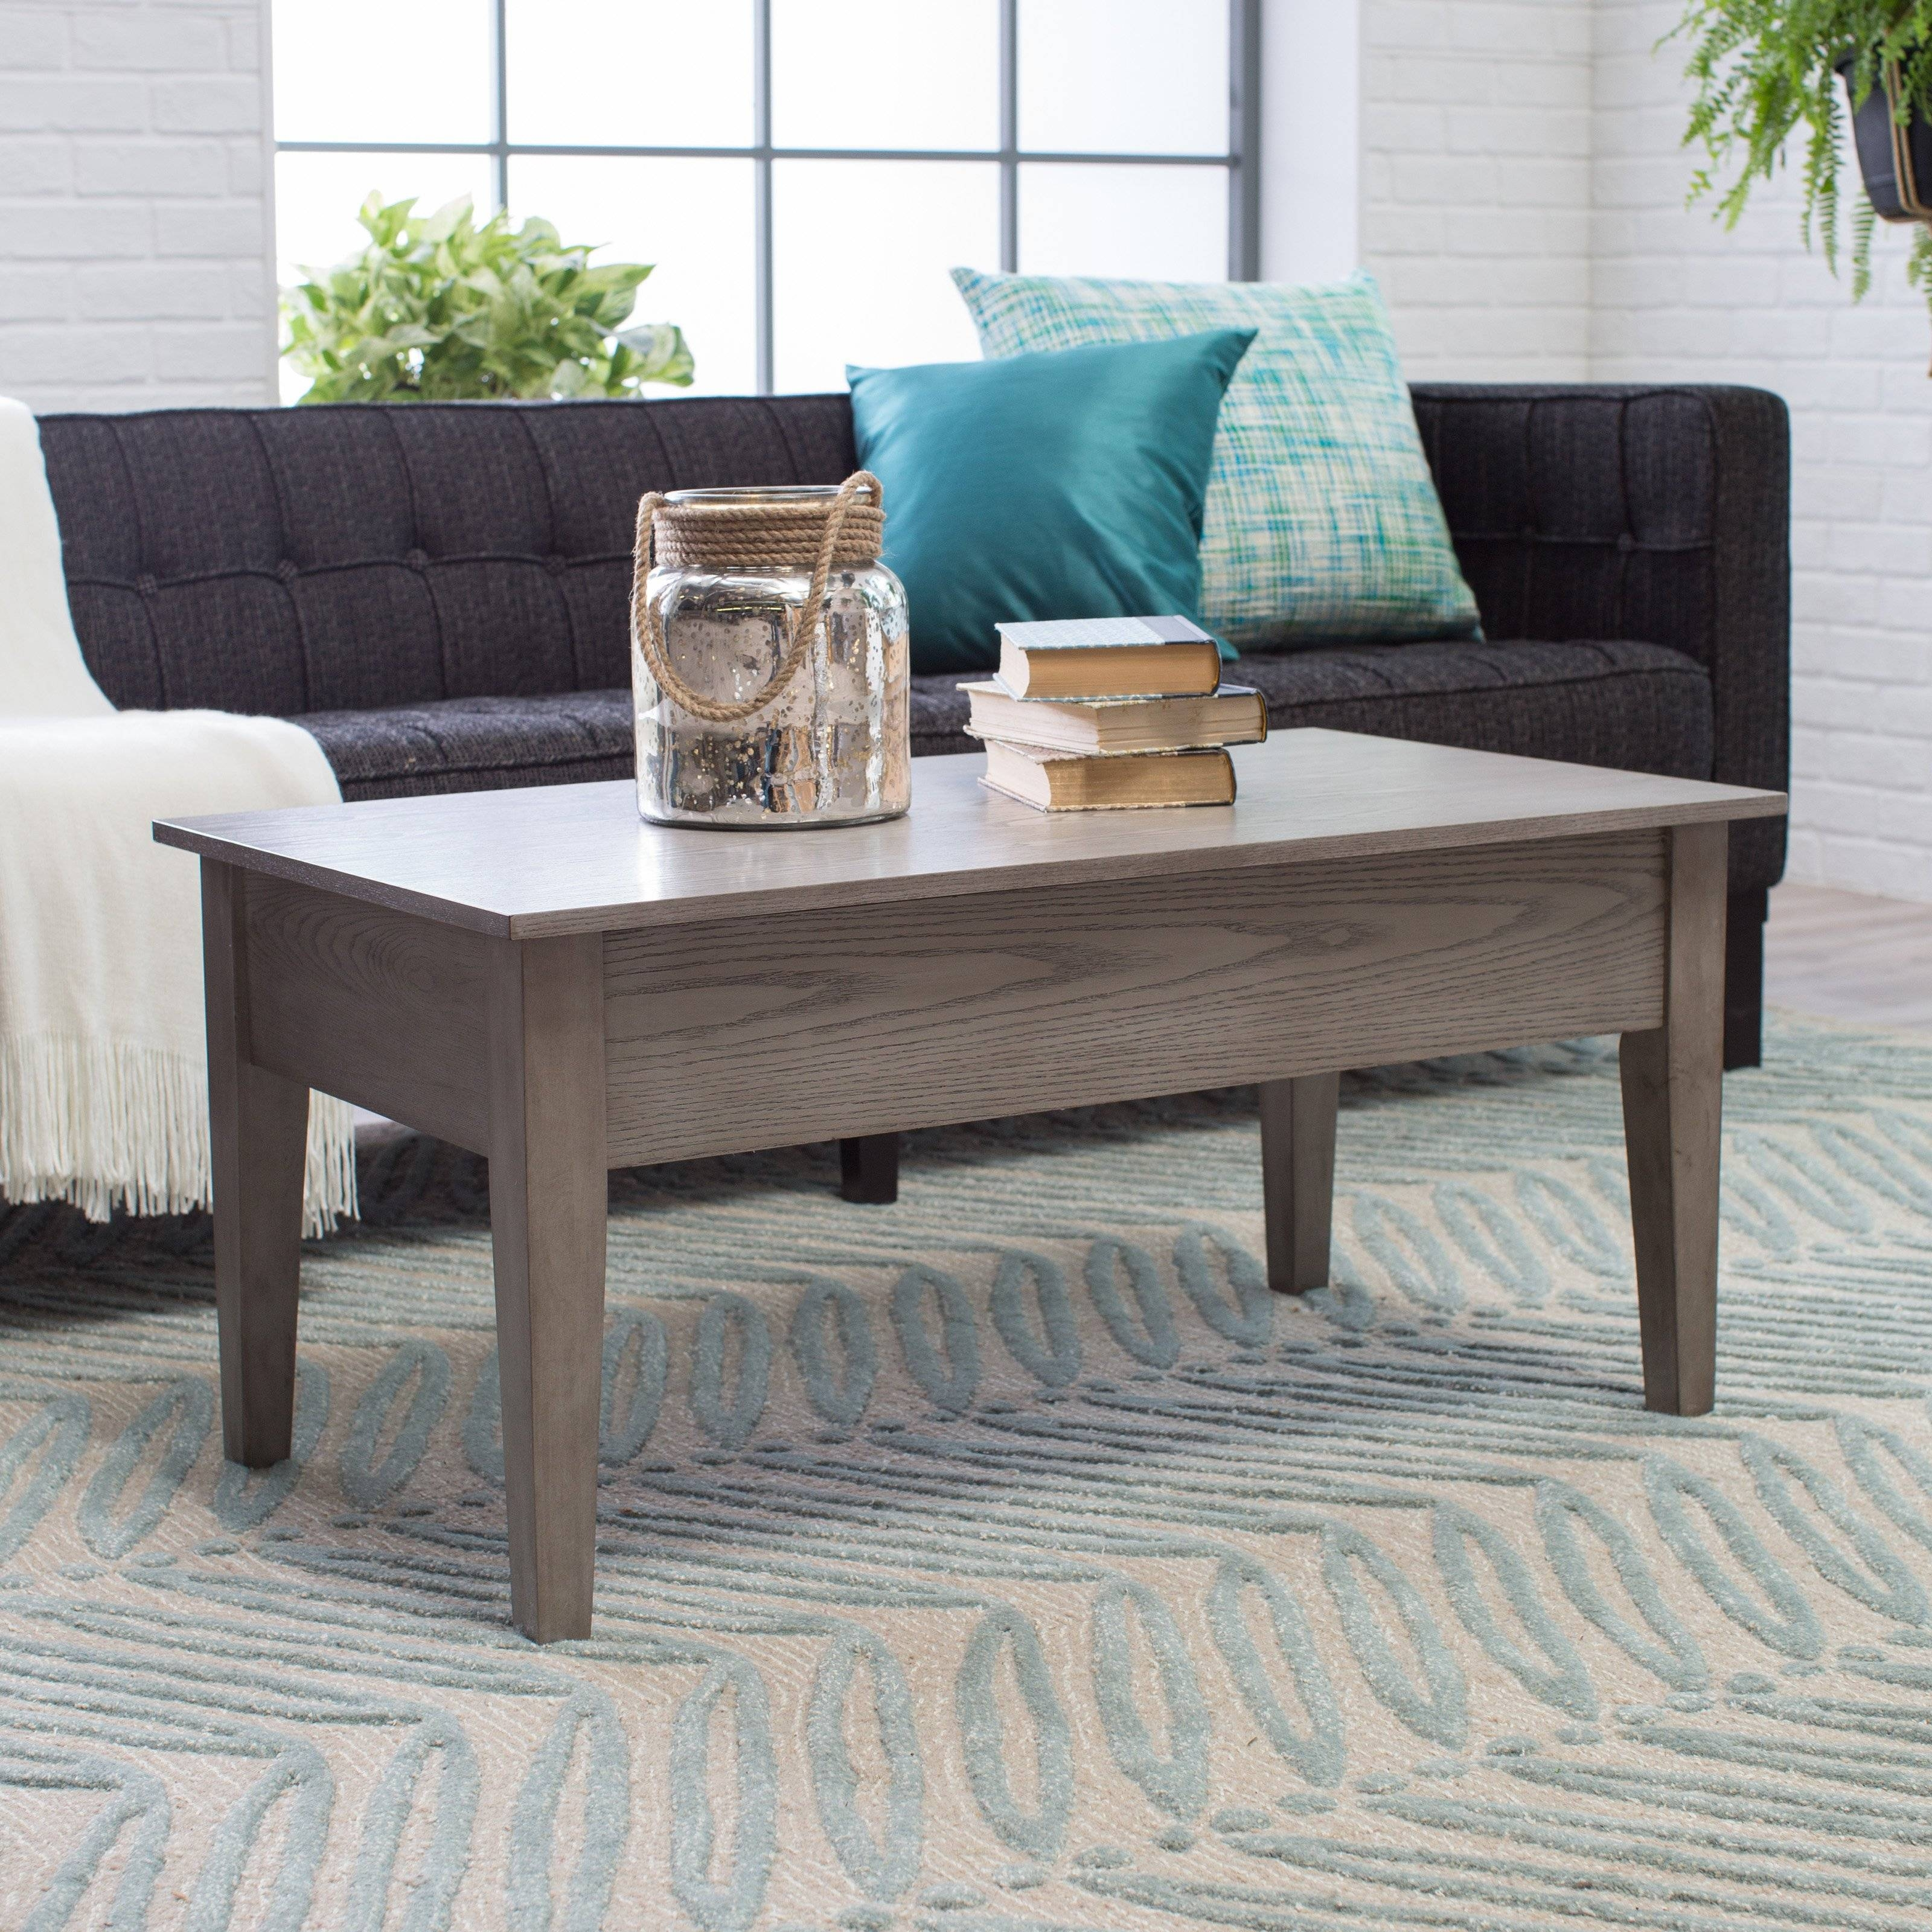 Turner Lift Top Coffee Table – Gray | Hayneedle Inside Lift Coffee Tables (View 5 of 30)